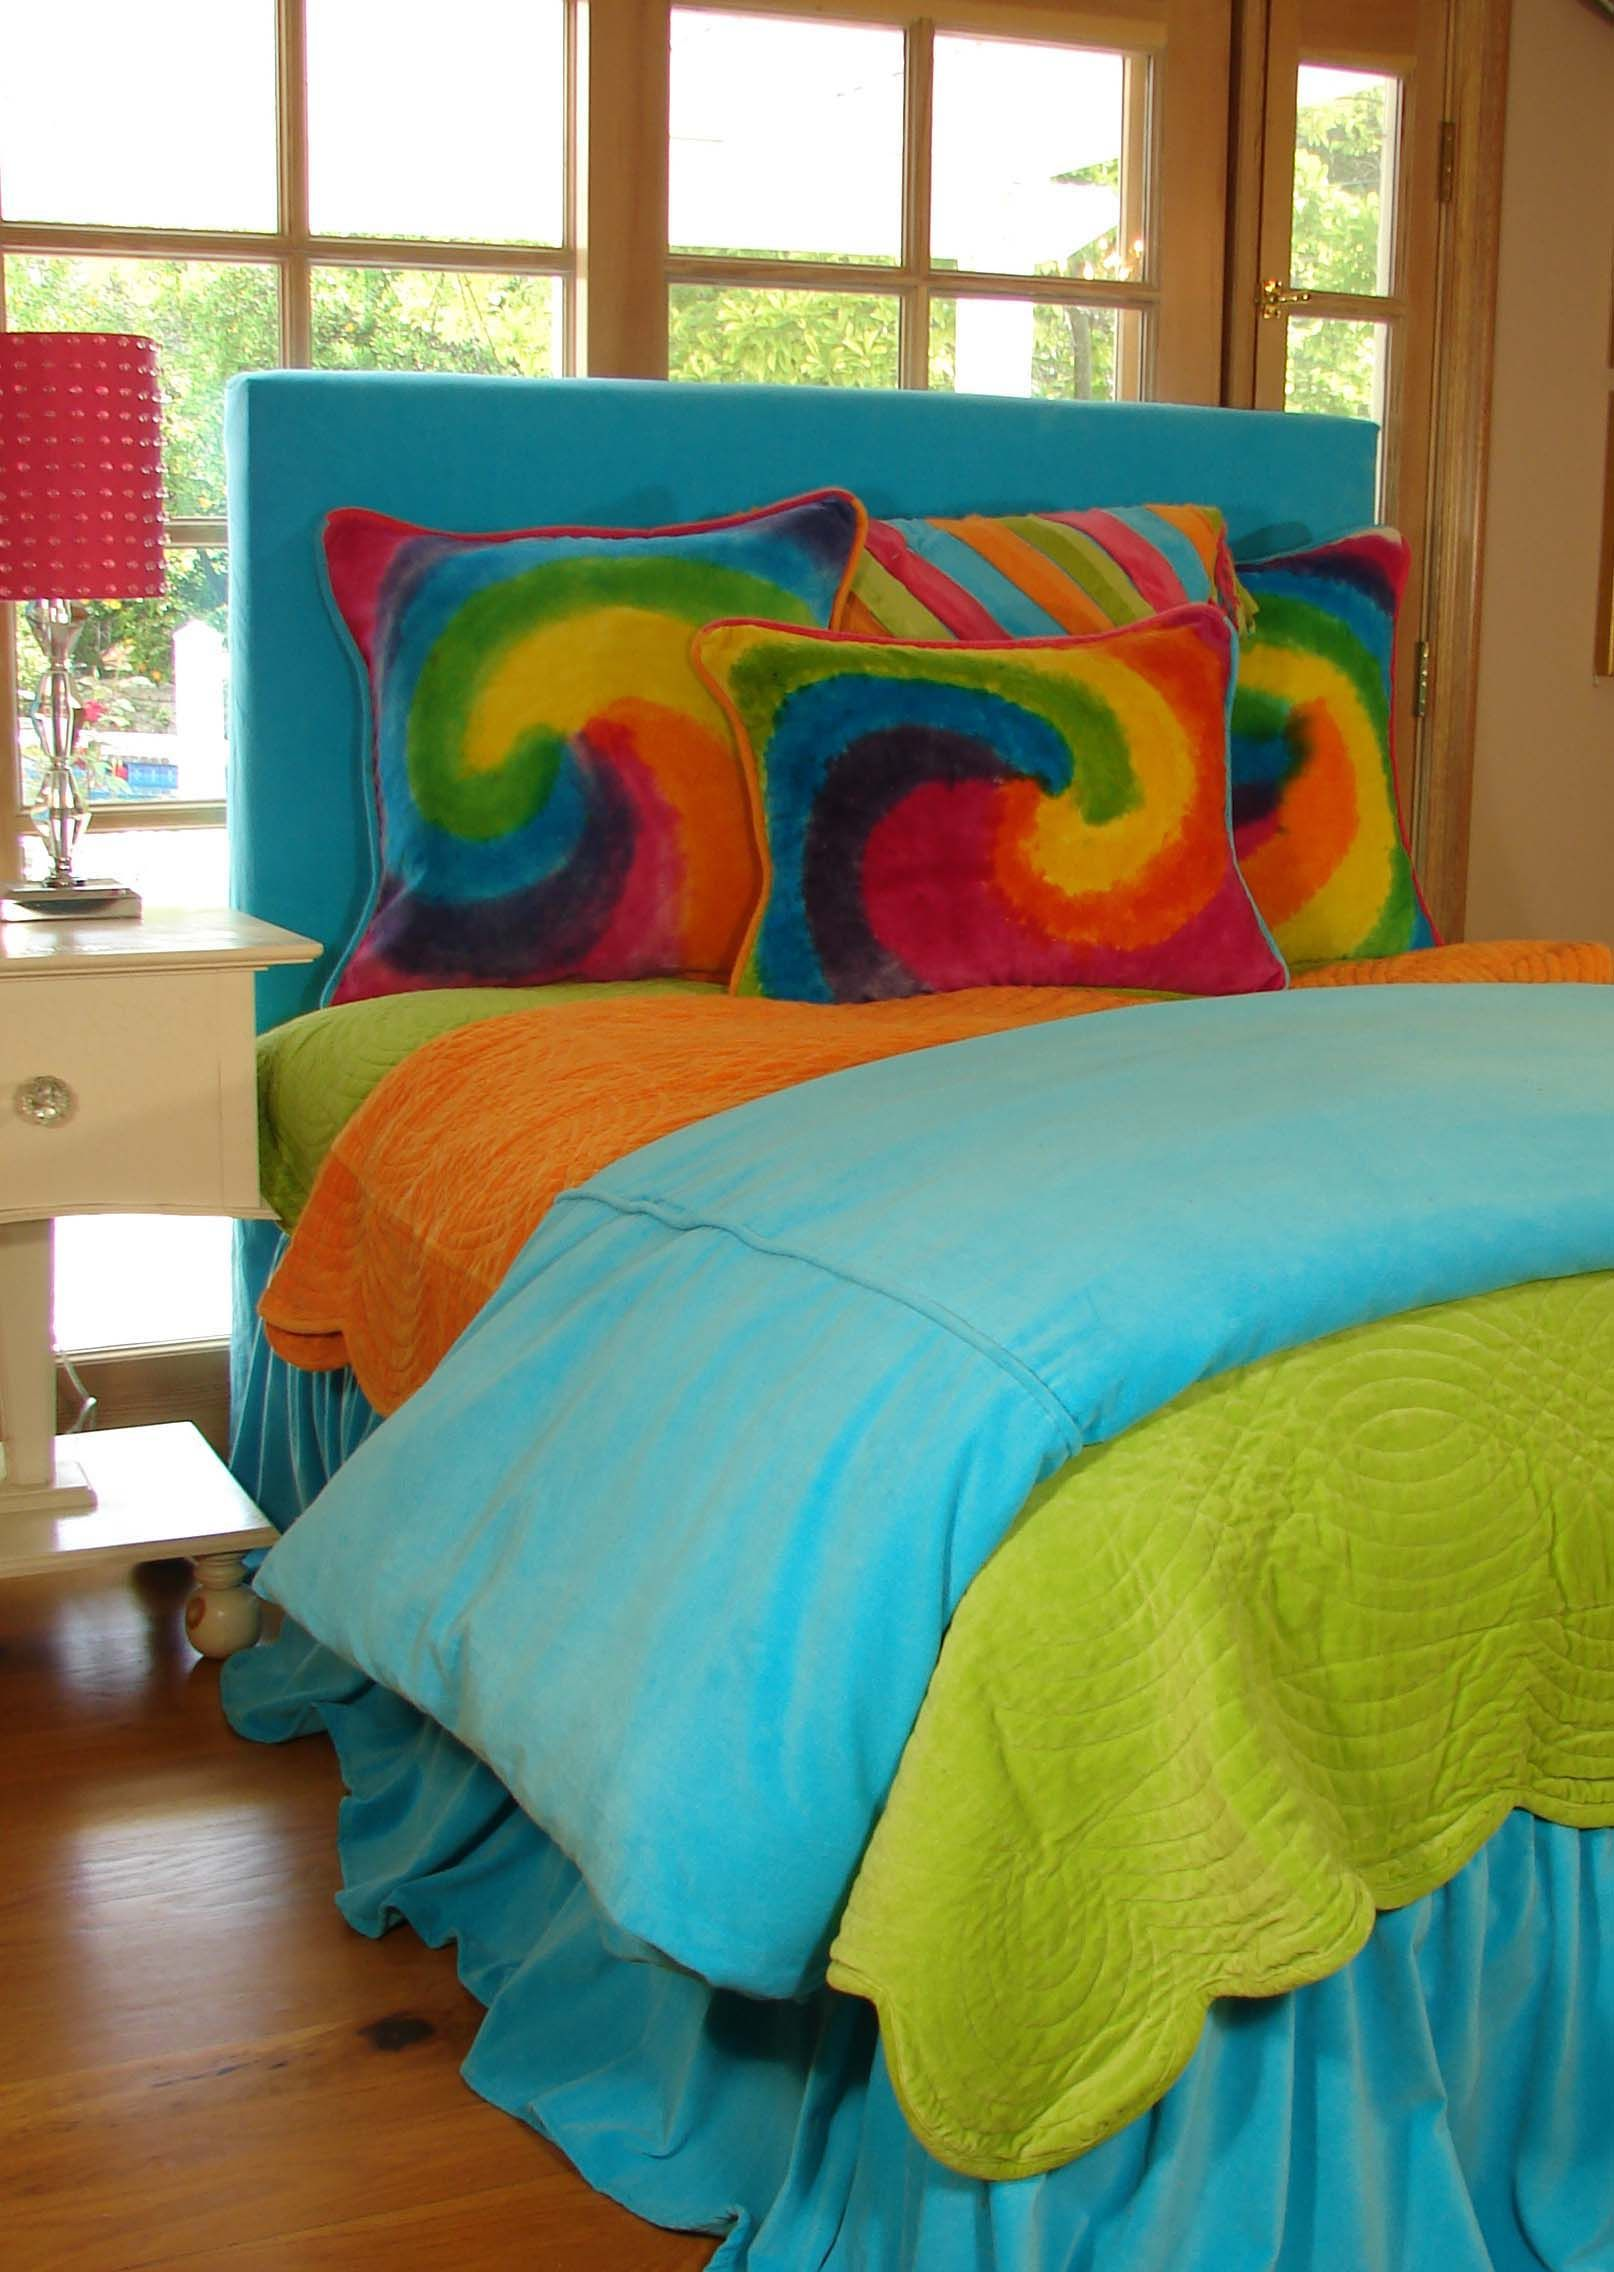 Teen Bedding In Bright Colors And Tie Dye Teen Bedroom